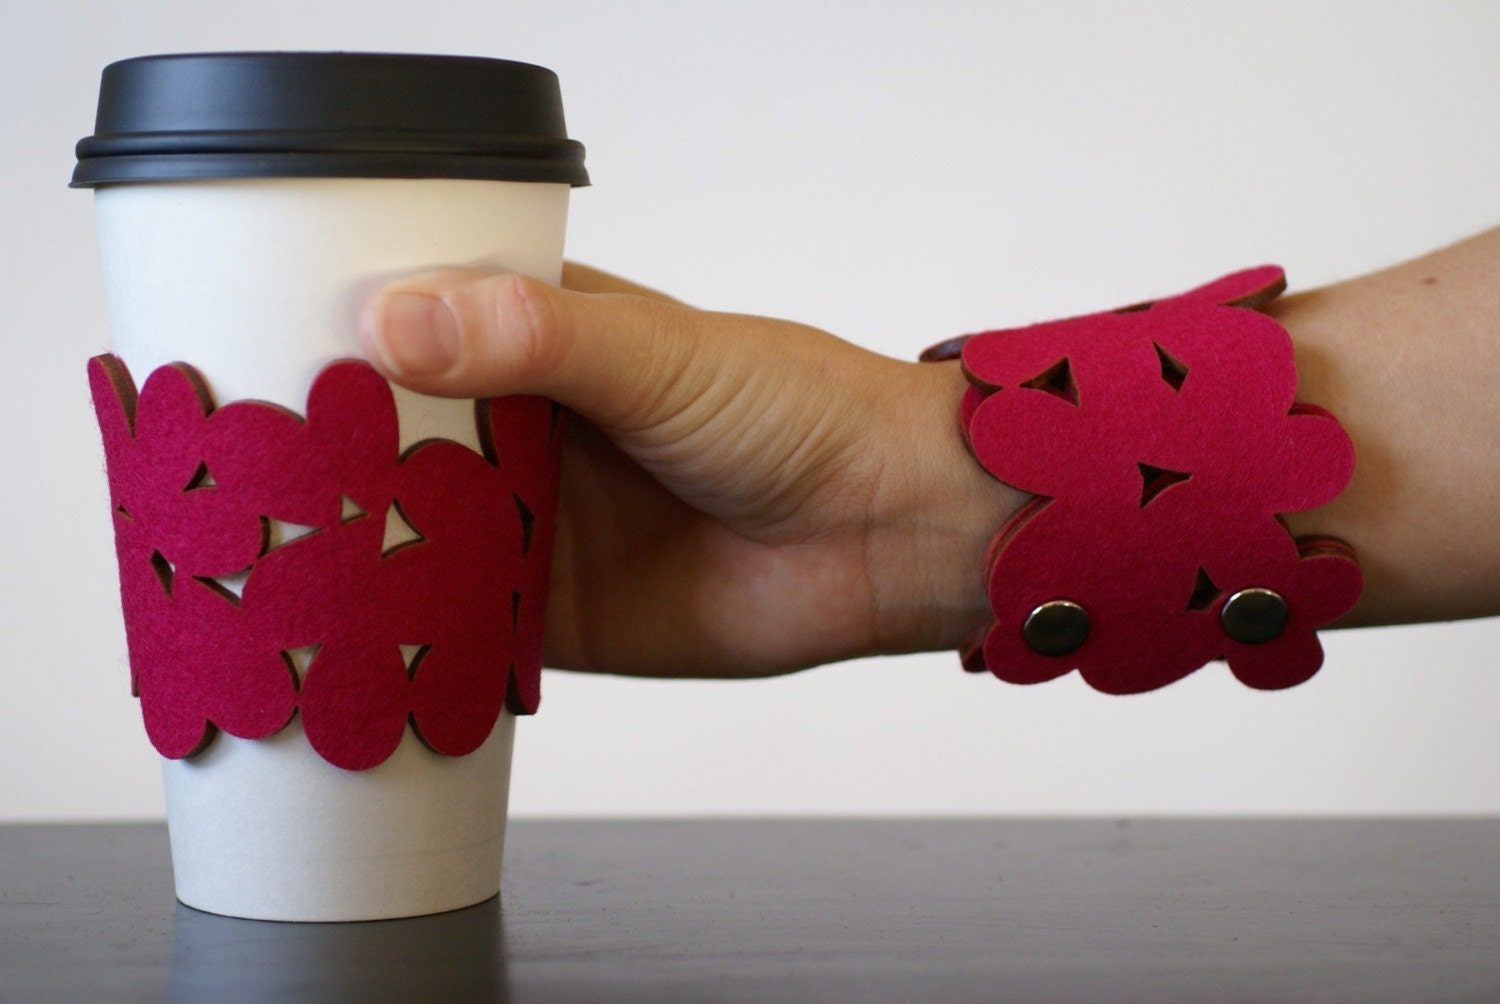 cozy/cuff SNAP - bracelet/reusable cup sleeve in pink wool felt - size medium - free shipping